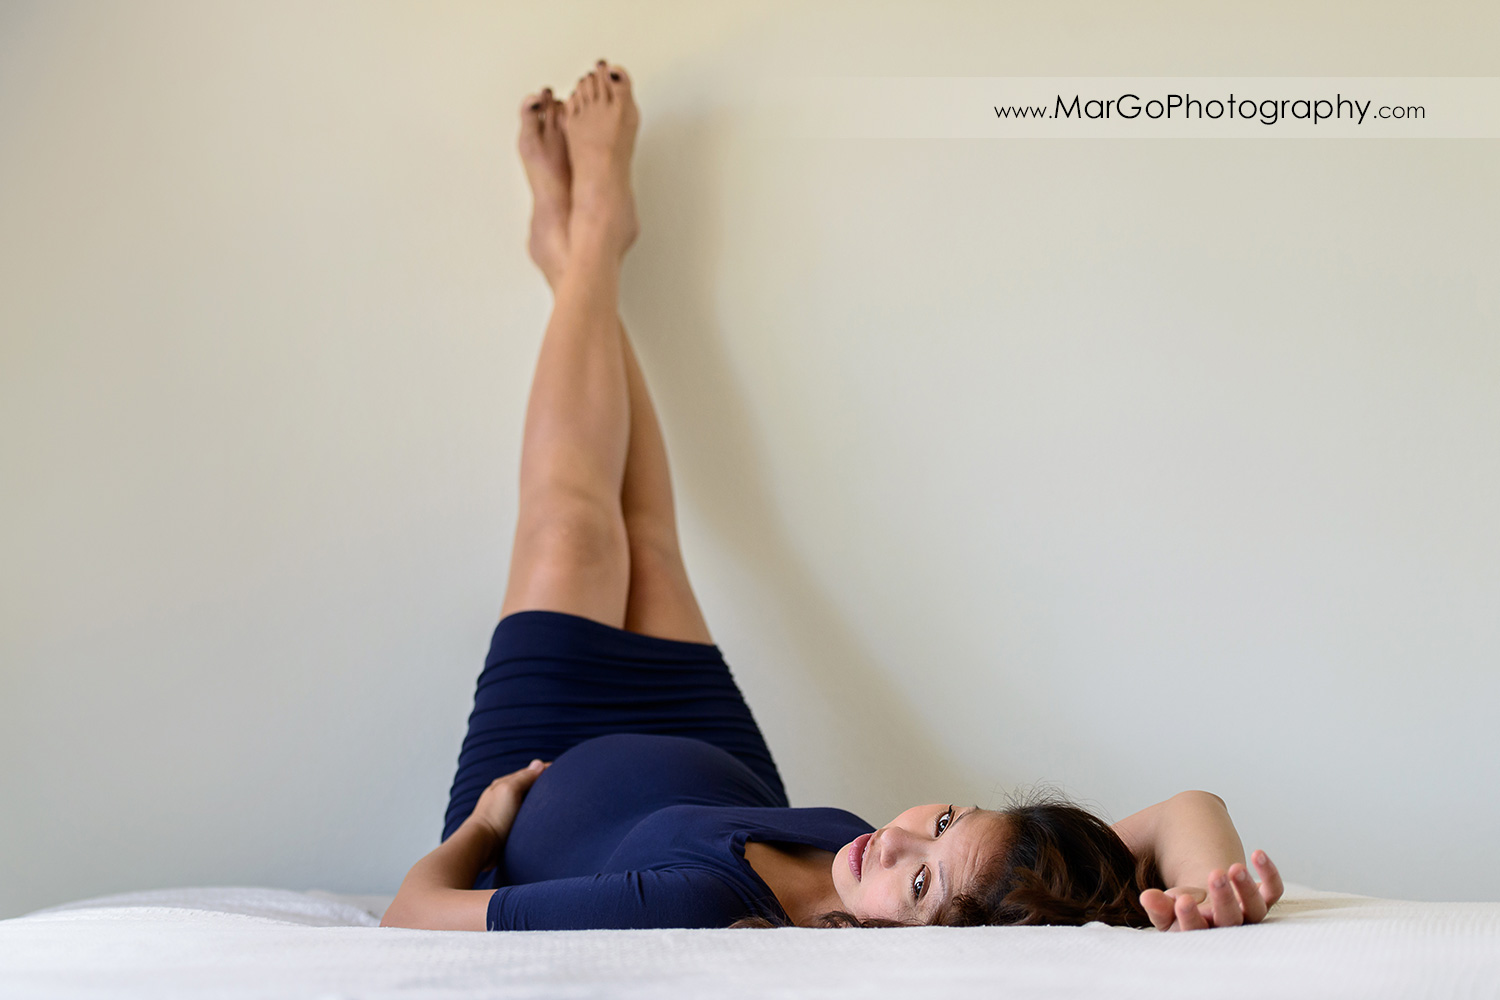 pregnant woman in navy blue dress laying on white bed and holding legs up